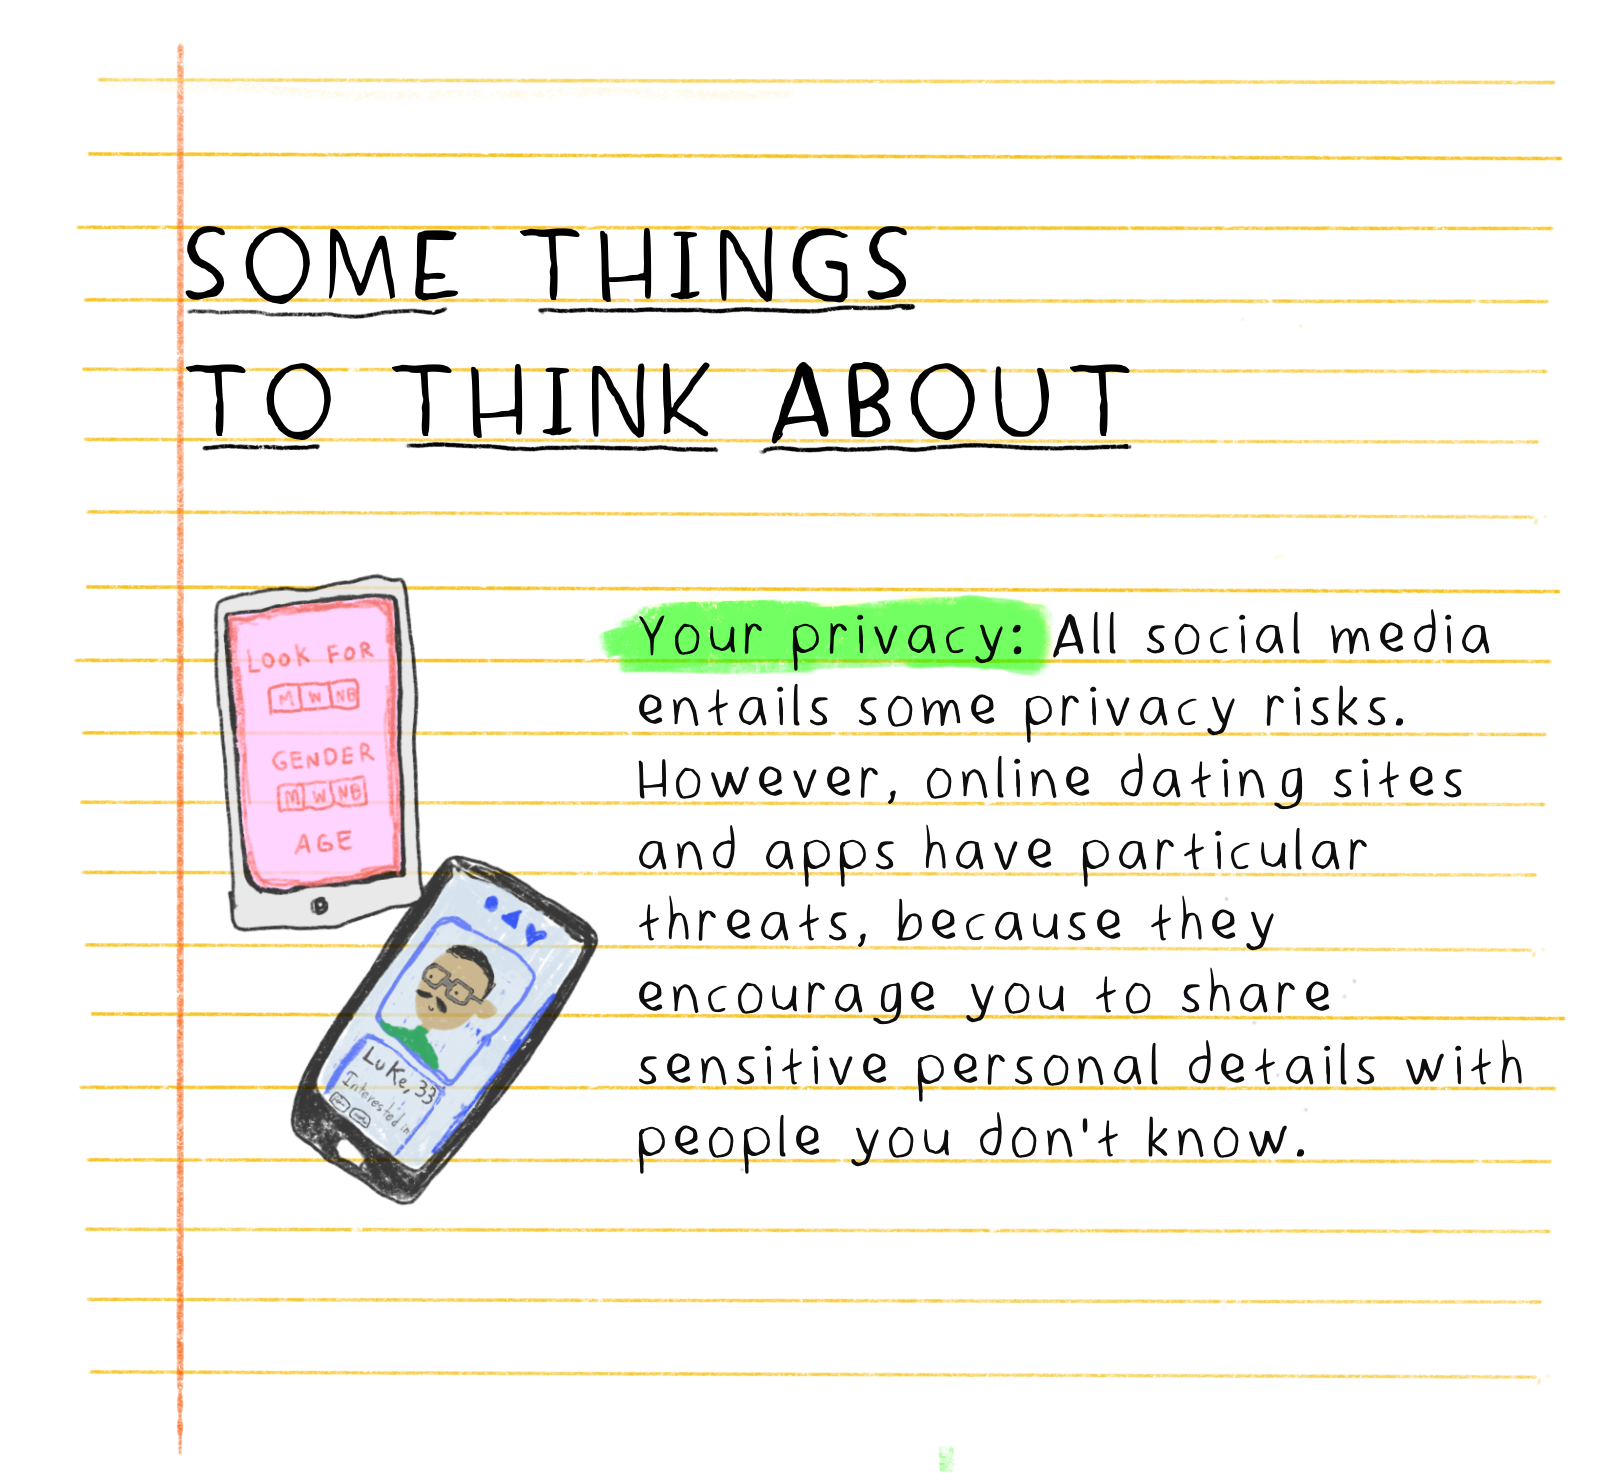 Some things to think about ... Your privacy: All social media entails some privacy risks. However, online dating sites and apps have particular threats, because they encourage you to share sensitive personal details with people you don't know.